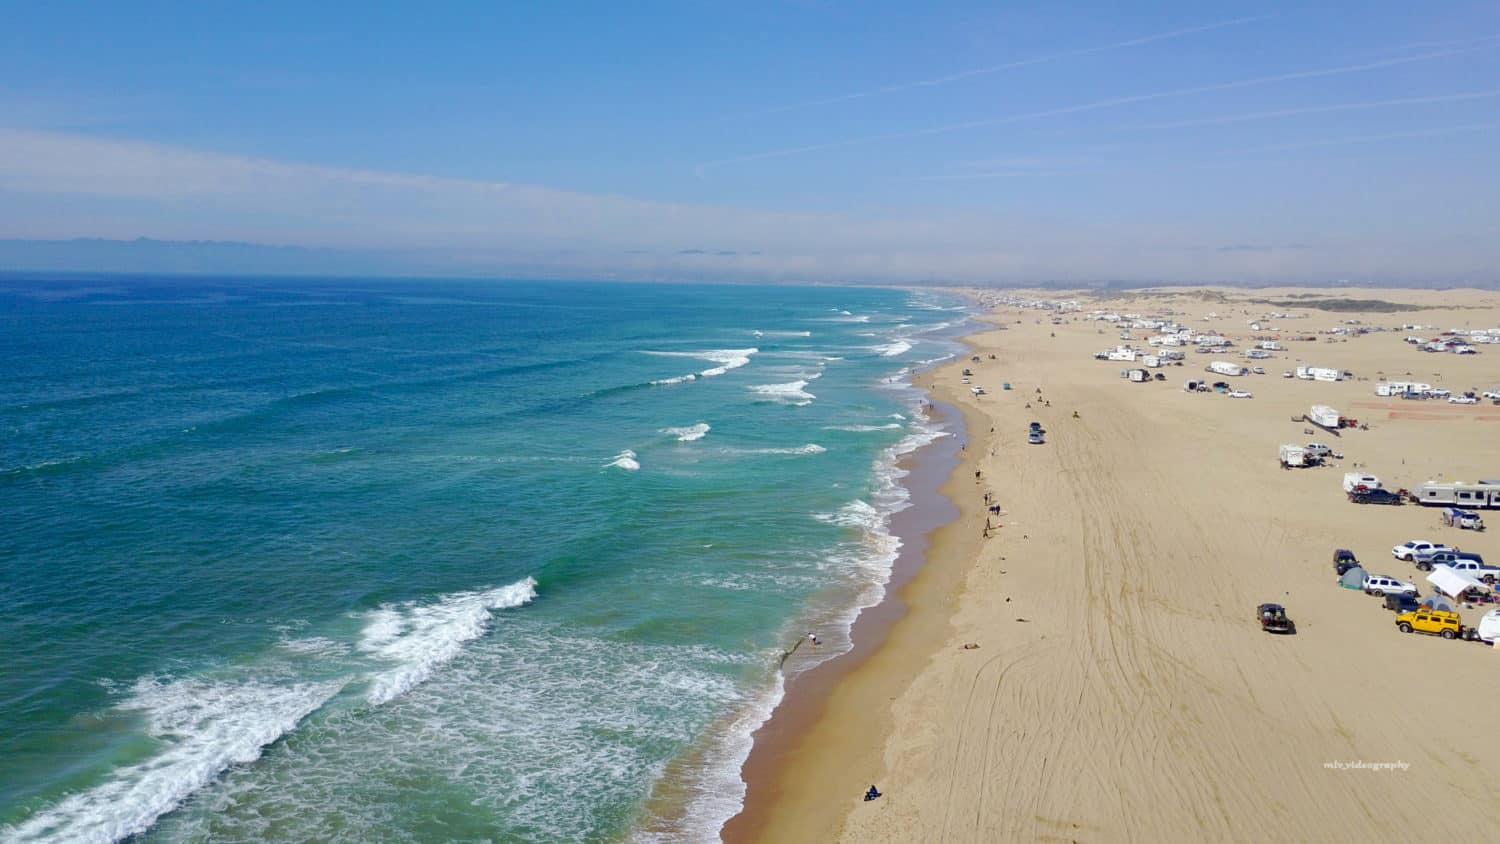 A drone shot of the action-packed celebration at Pismo Beach